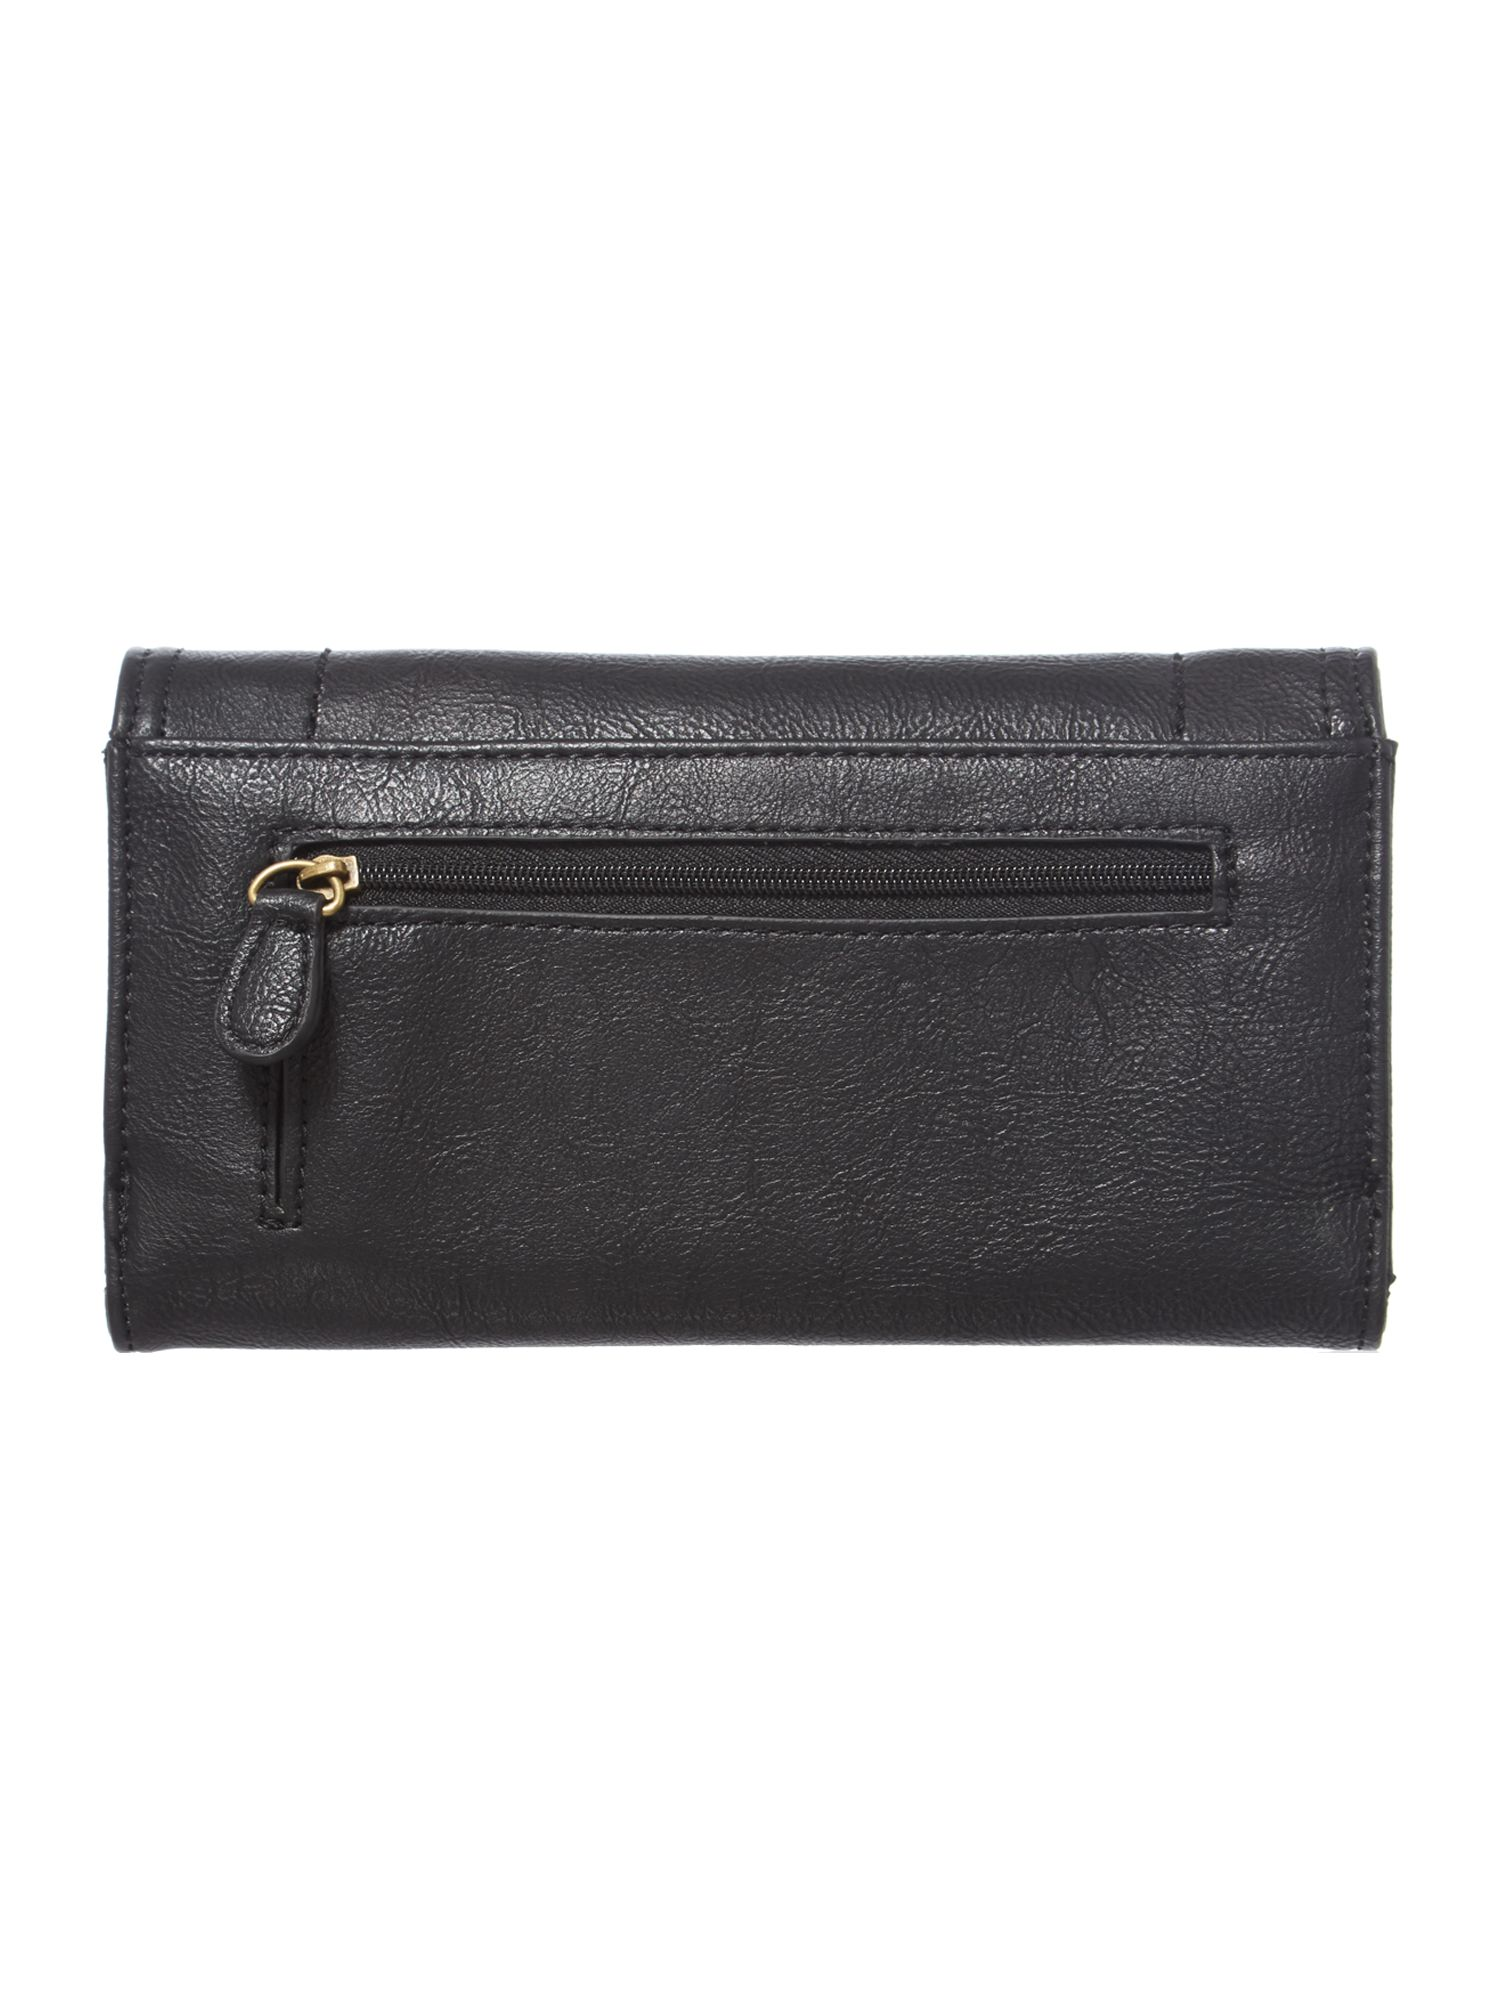 Judy black large flap over purse